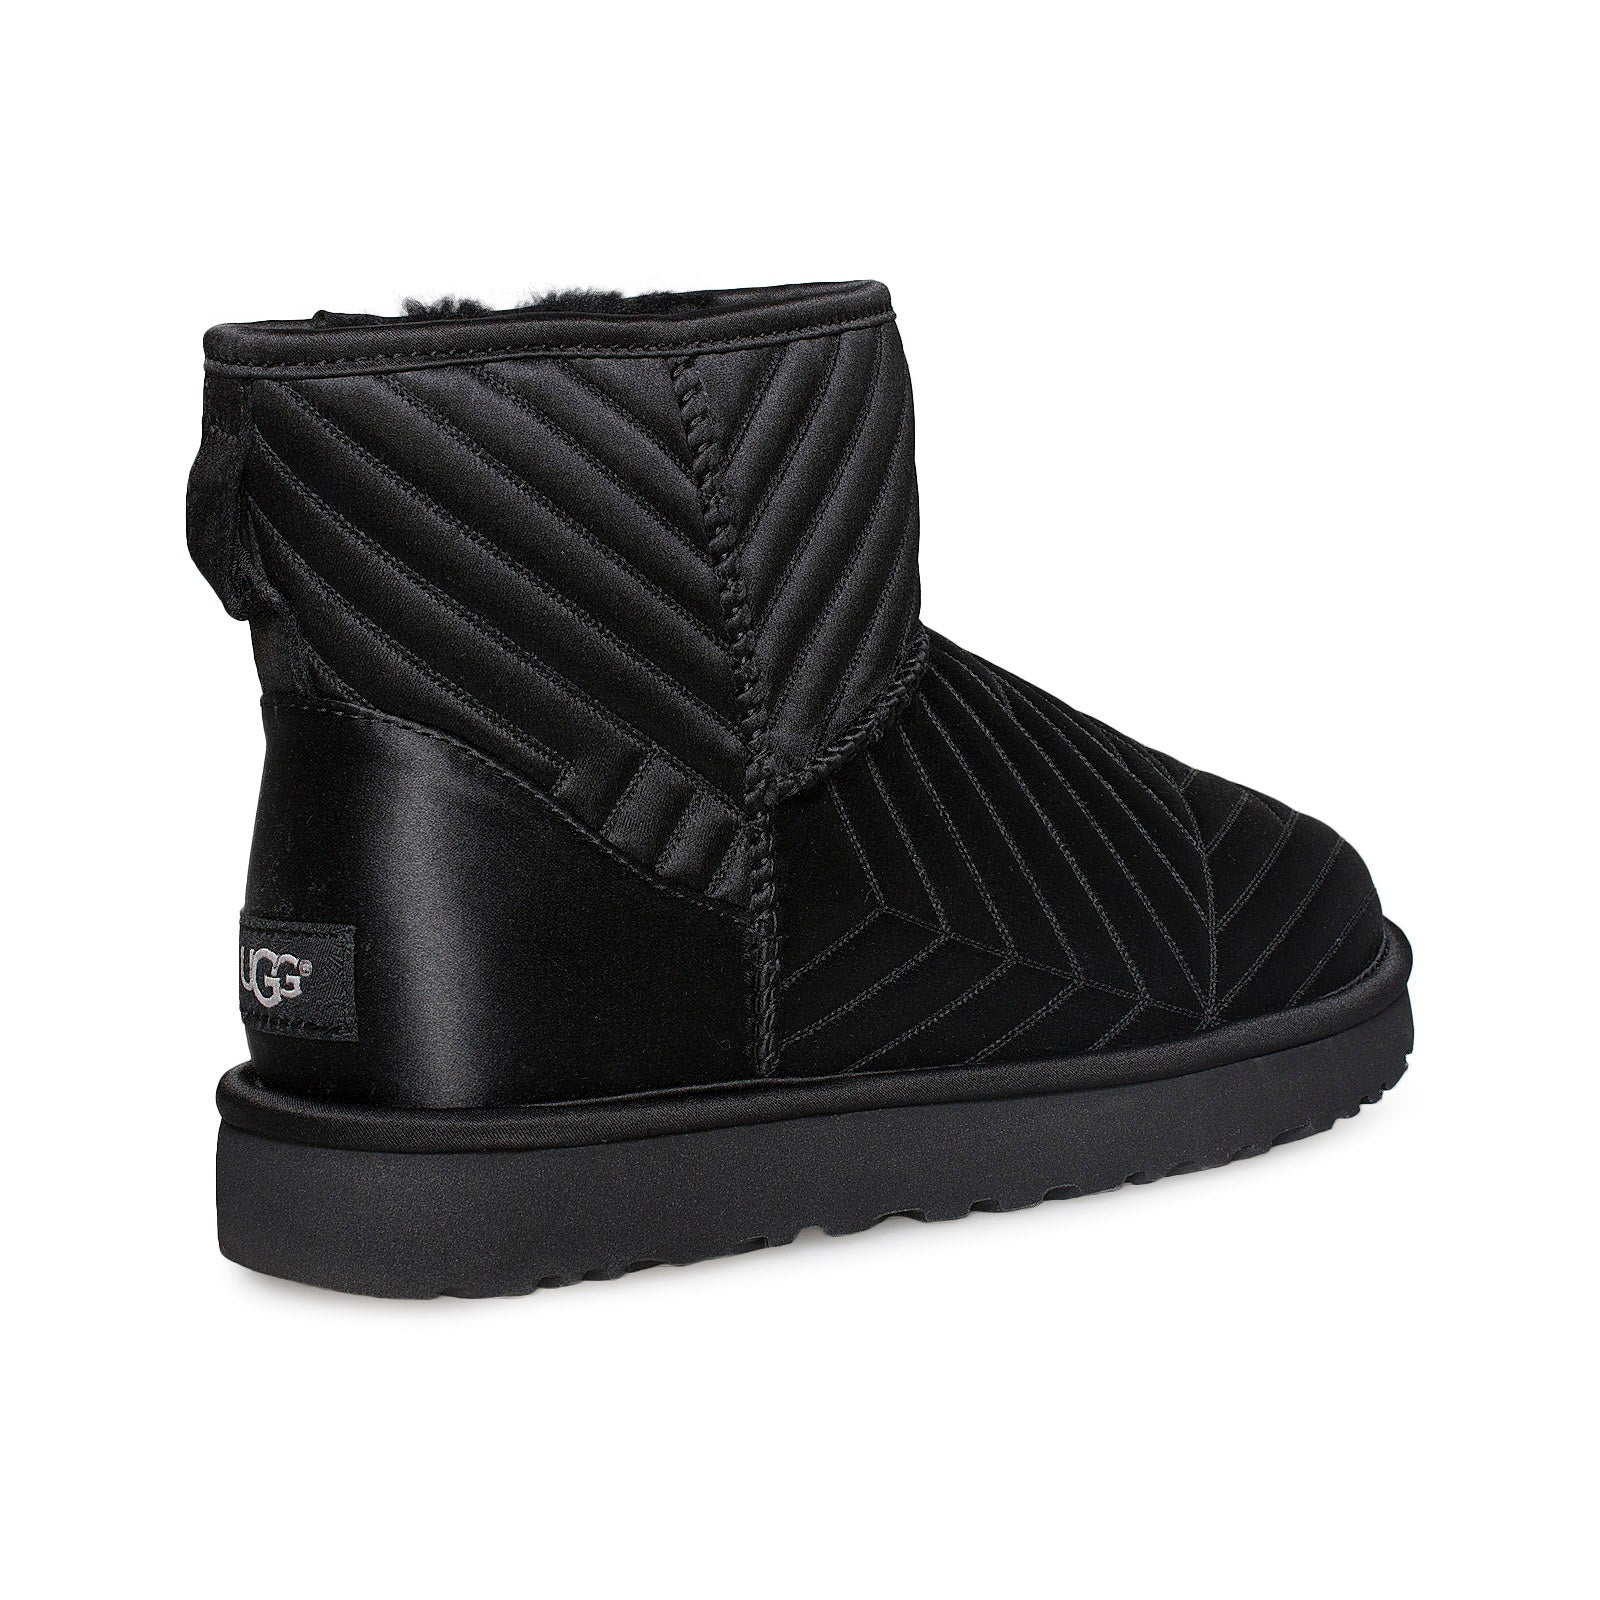 Ugg Classic Mini Quilted Satin Black Boots Womens Mycozyboots